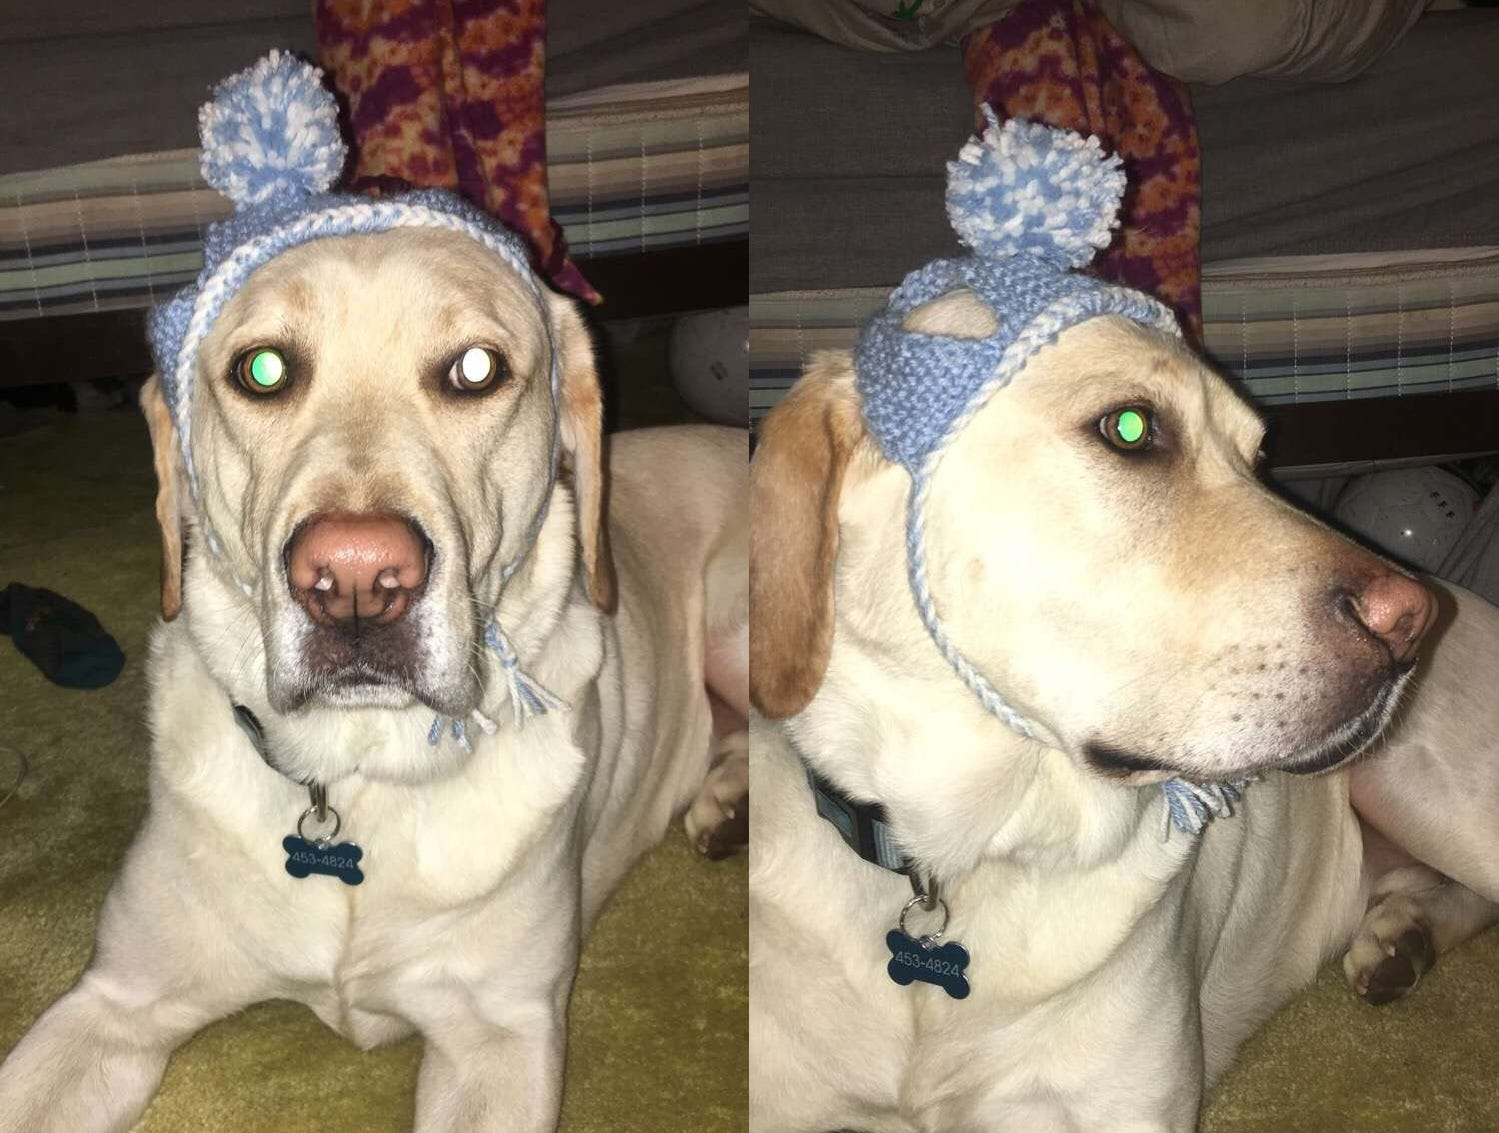 """Jennie Gresham knits """"Cat Hats"""" for friends, family and by request, asking only that recipients donate to the Maclean Animal Adoption Center in return.  Owners take photos and send their cats' """"comment"""" on the hat.  Jake the dog borrows his brother's hat for a quick photo."""